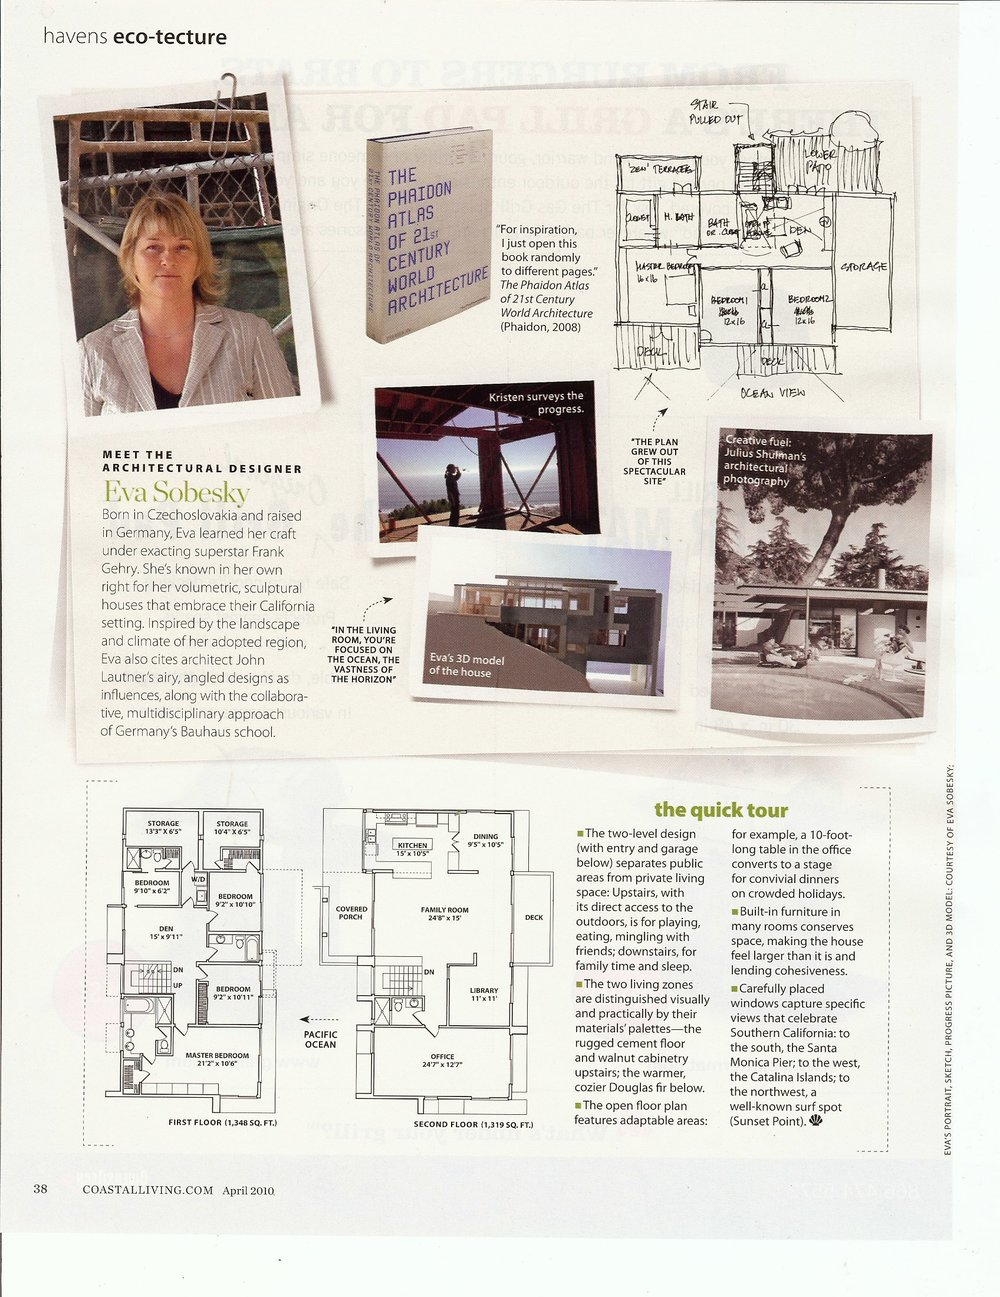 eisstudio_coastal living_Page_5.jpg